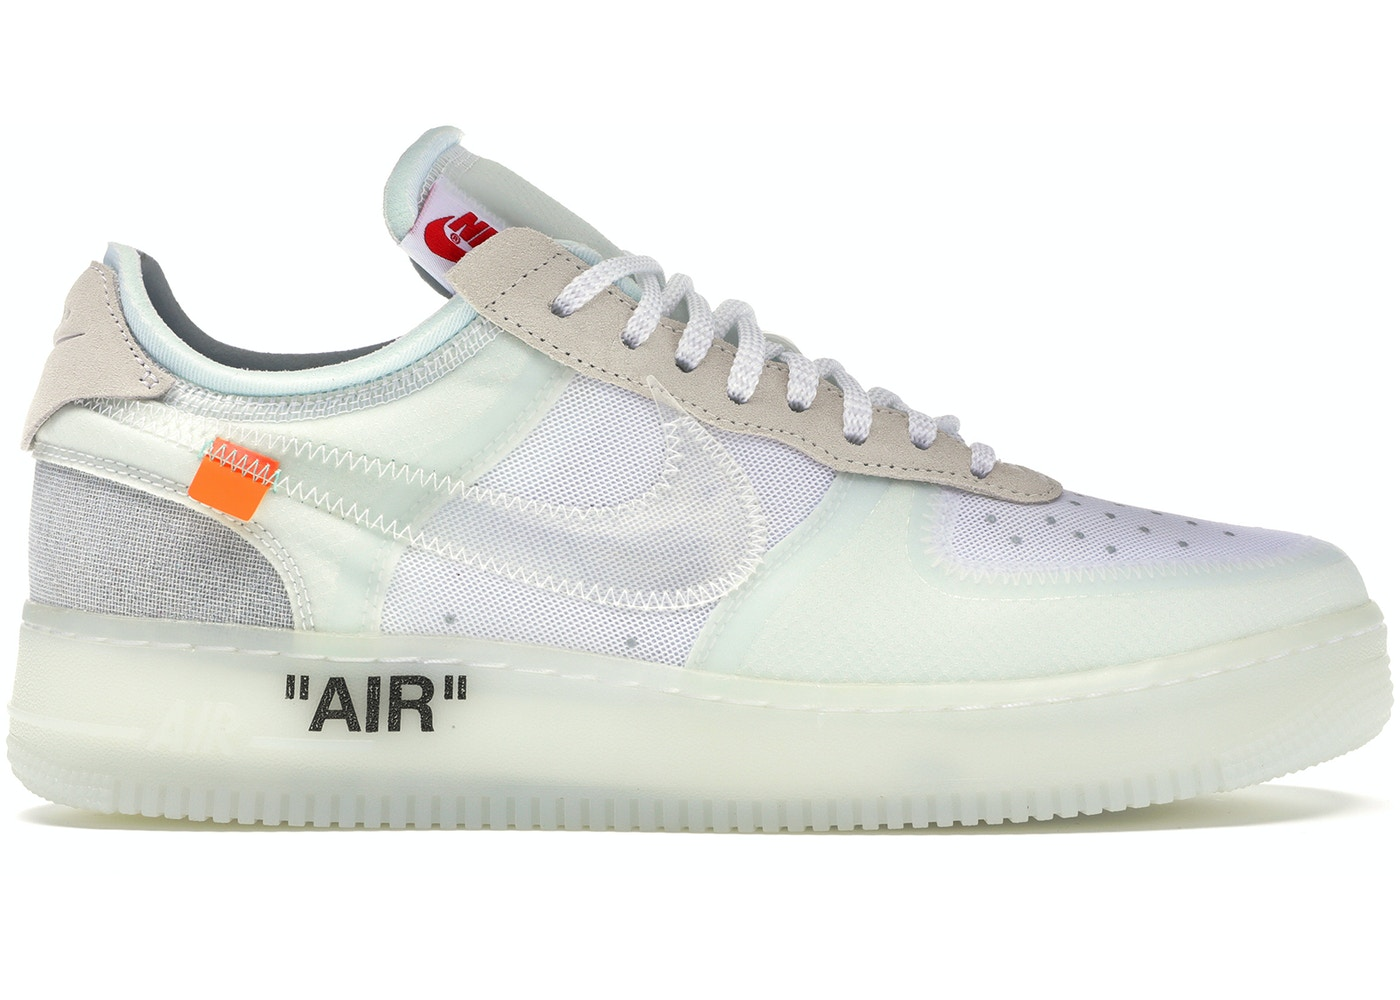 a5d9847c0e7f Air Force 1 Low Off-White - AO4606-100